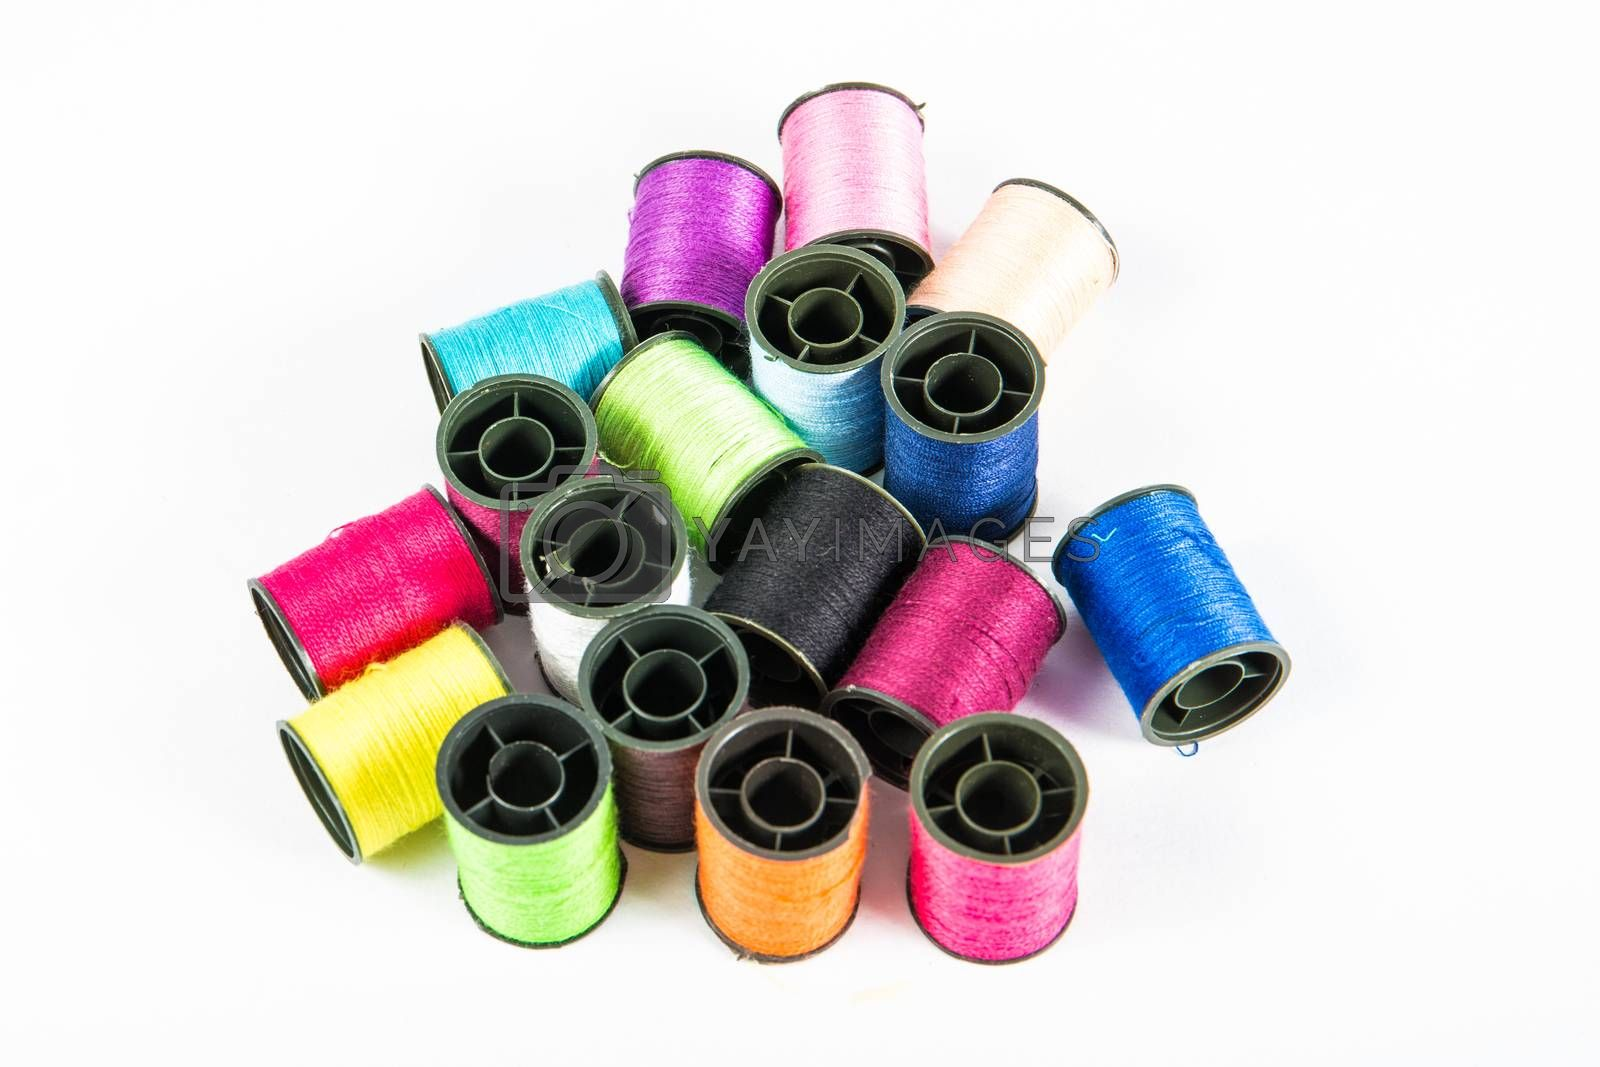 Royalty free image of sewing threads by tuchkay